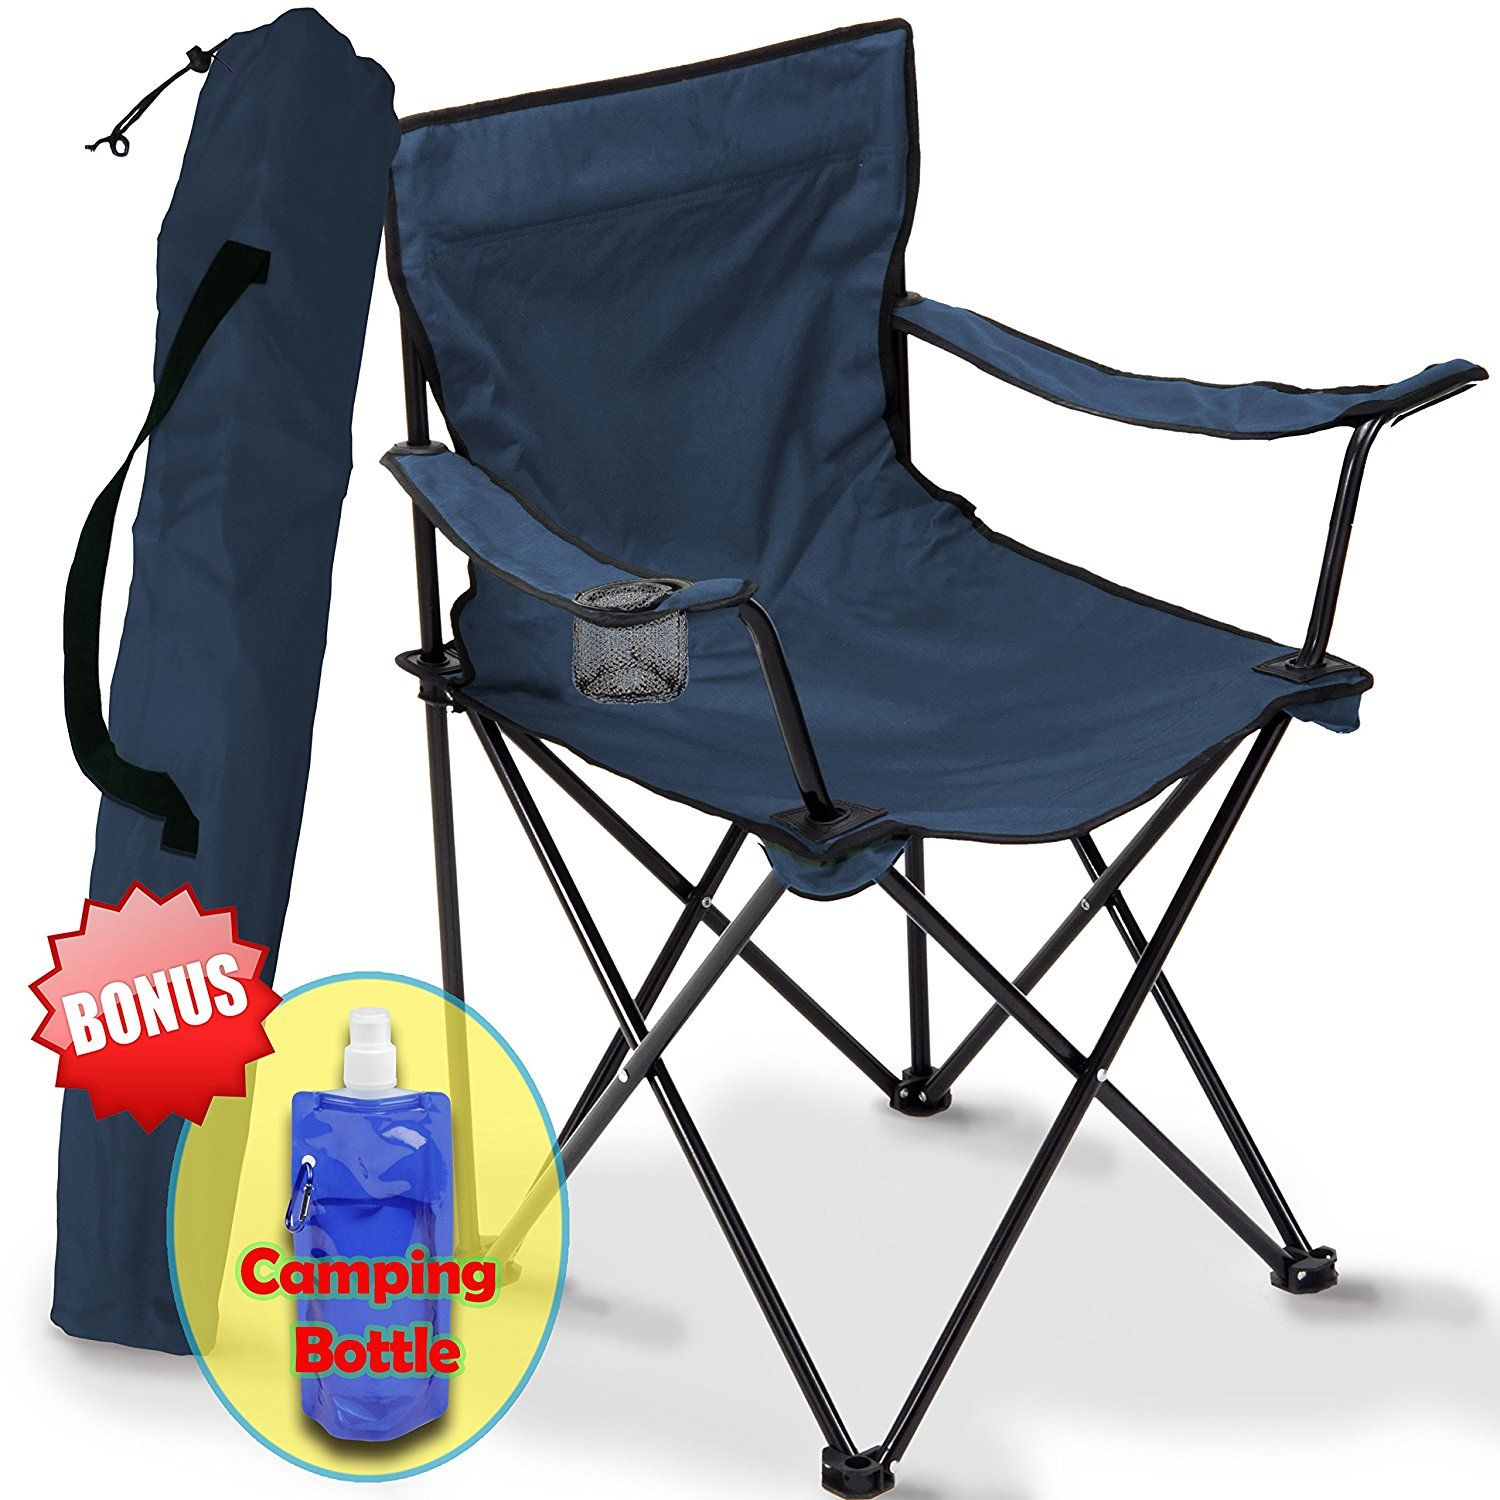 Camping Chair Folding, Portable Carry Bag for Storage and